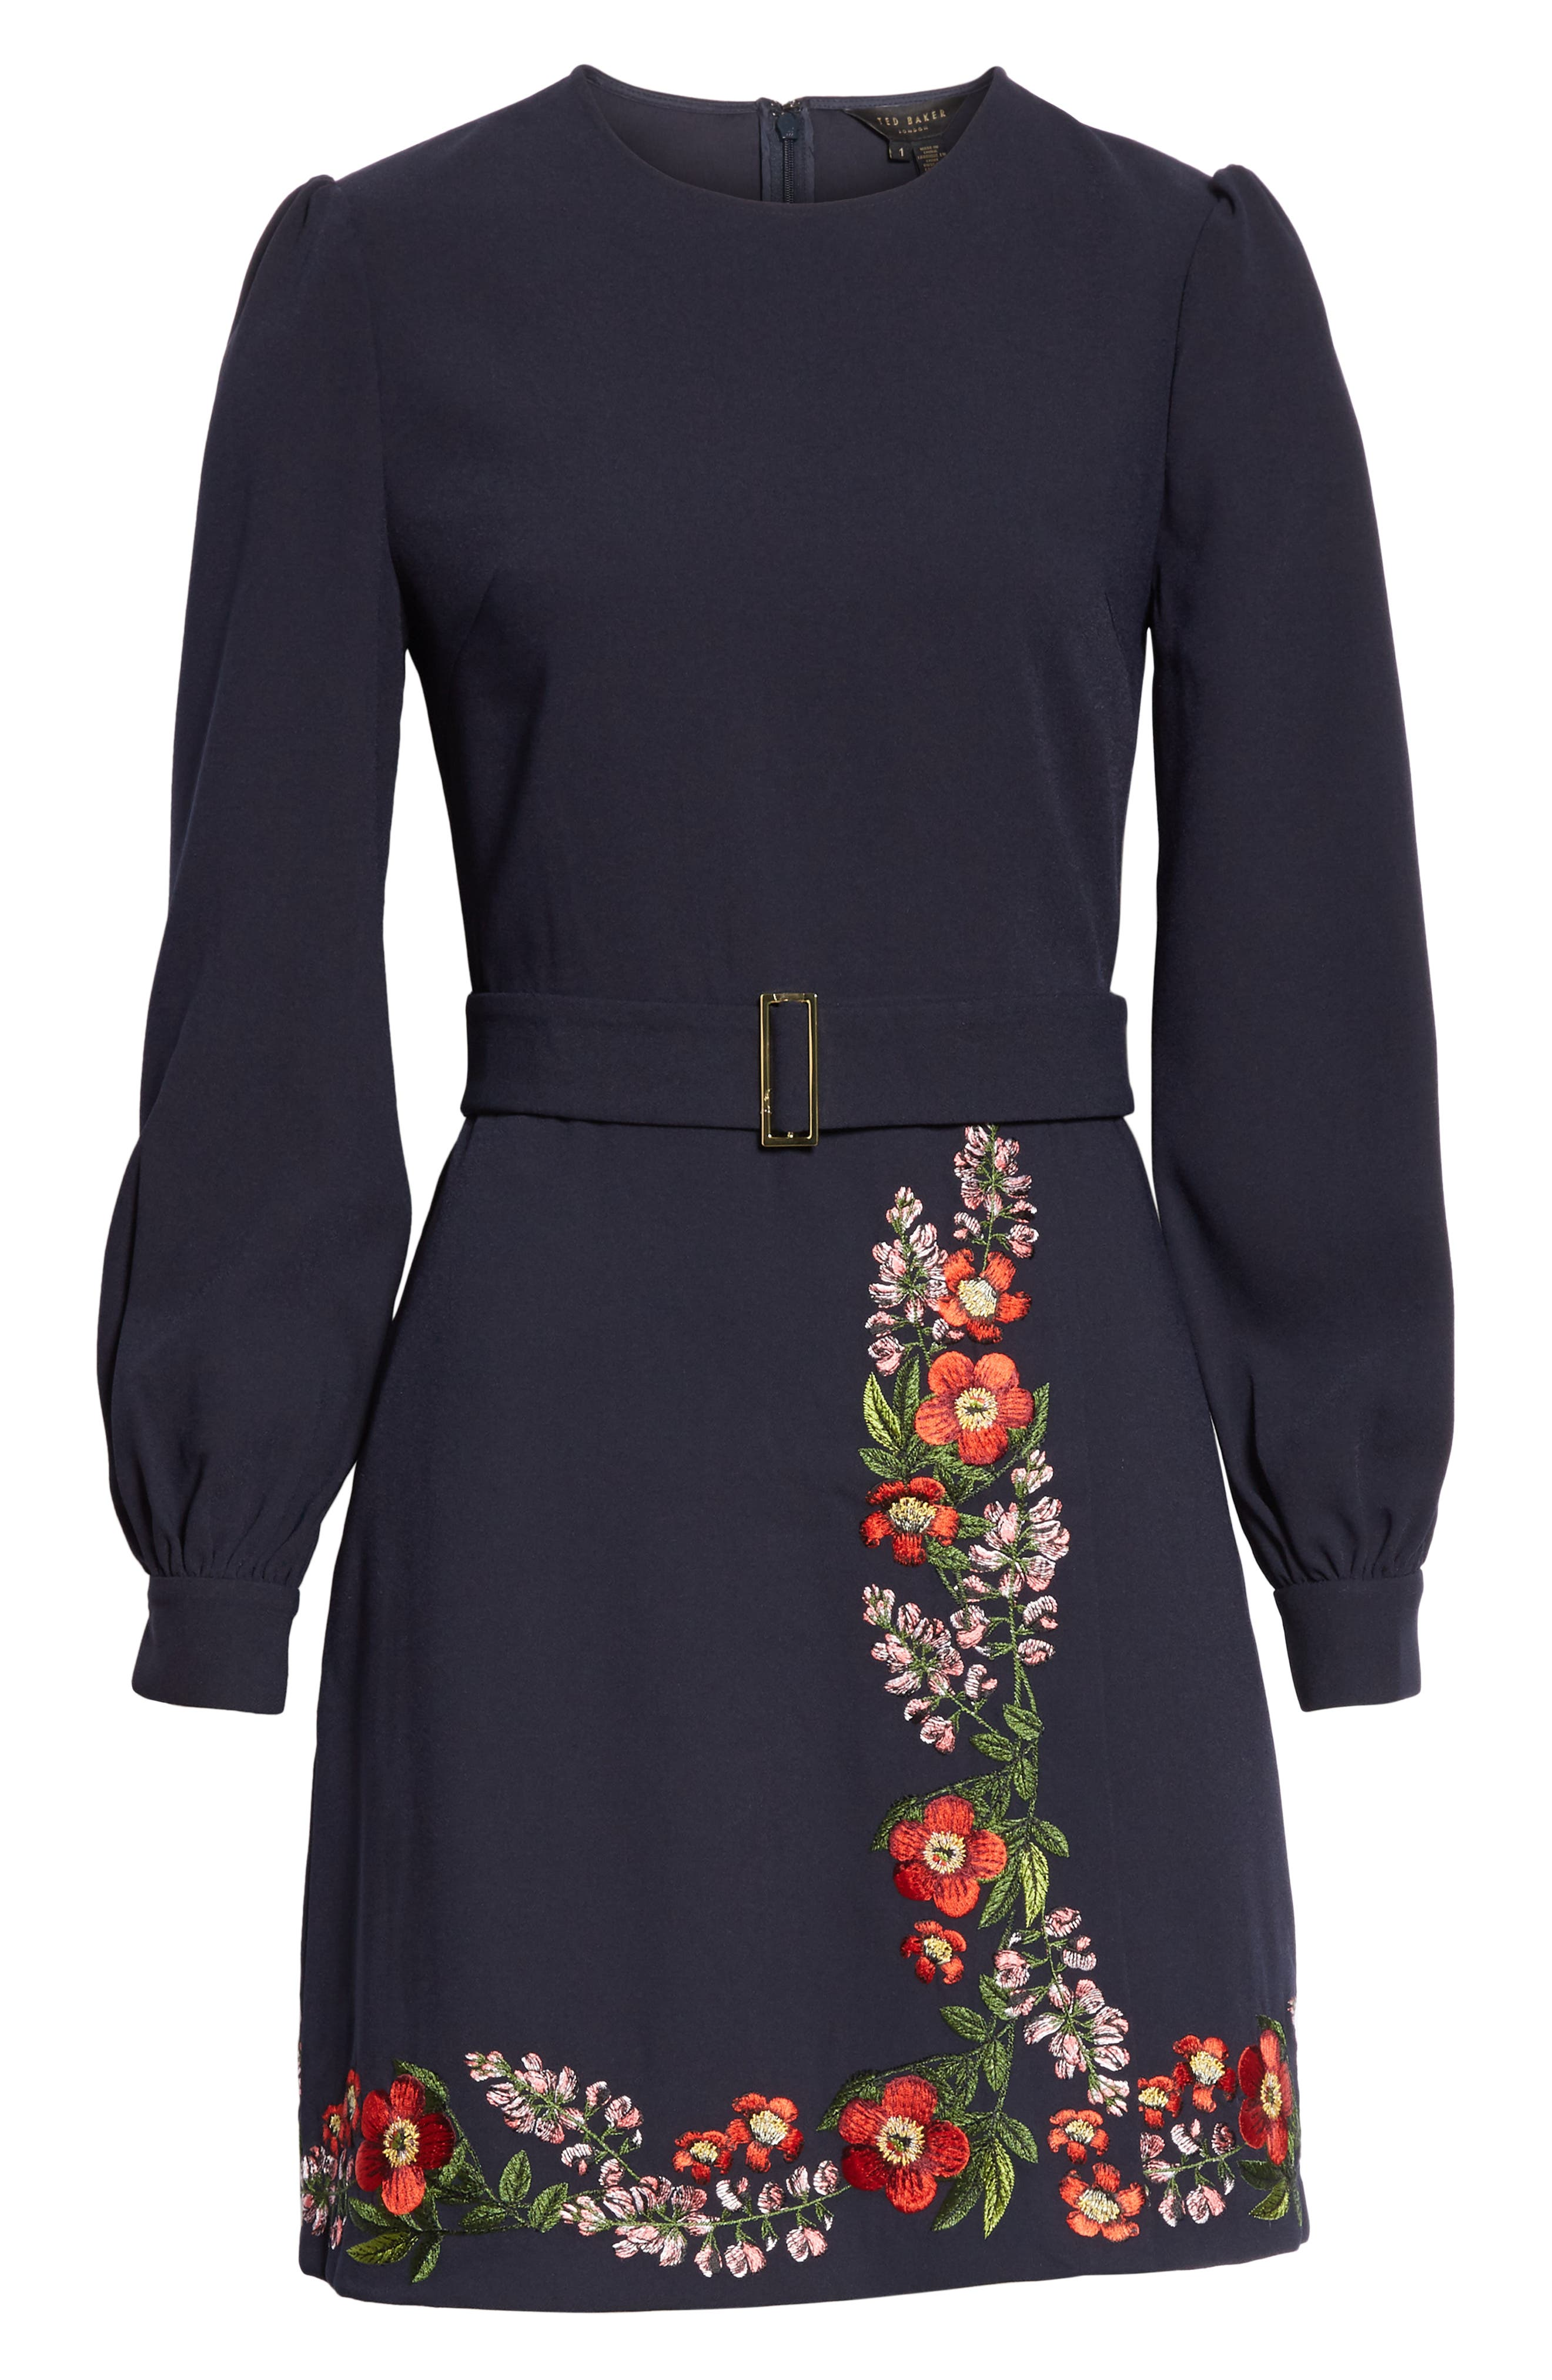 Silia Kirstenbosch Embroidered Dress,                             Alternate thumbnail 6, color,                             DARK BLUE